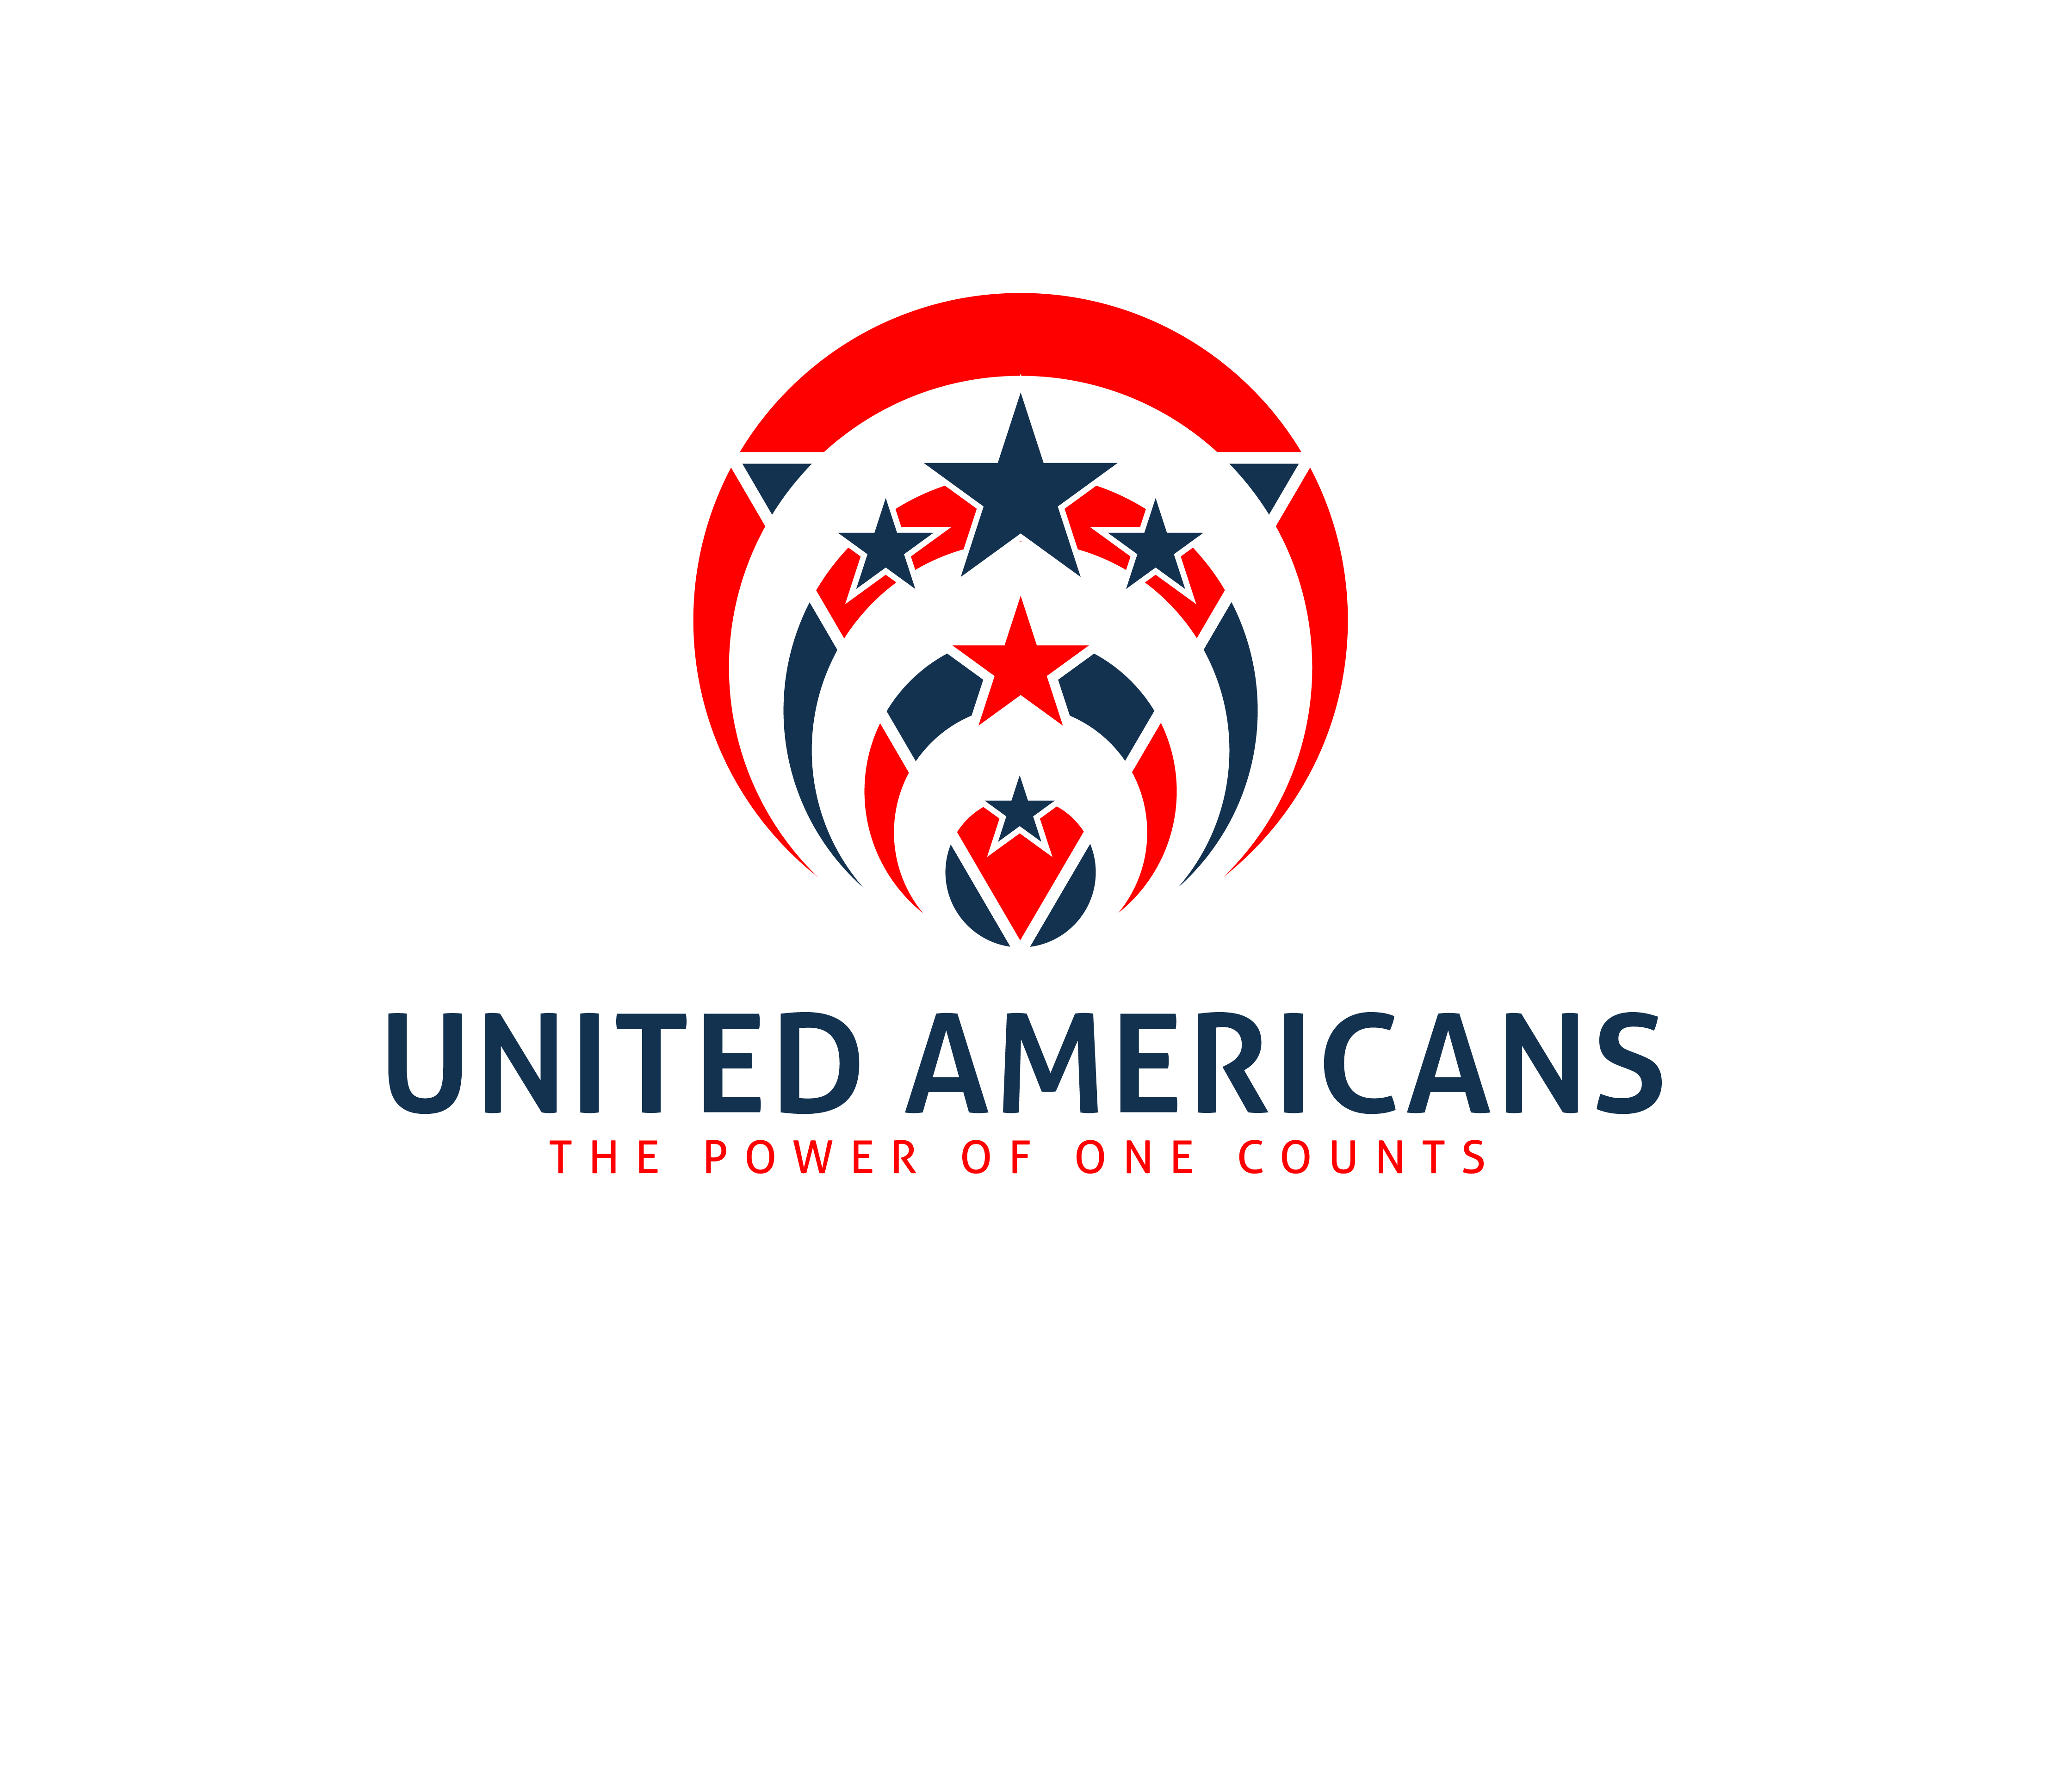 Logo Design by 3draw - Entry No. 115 in the Logo Design Contest Creative Logo Design for United Americans.